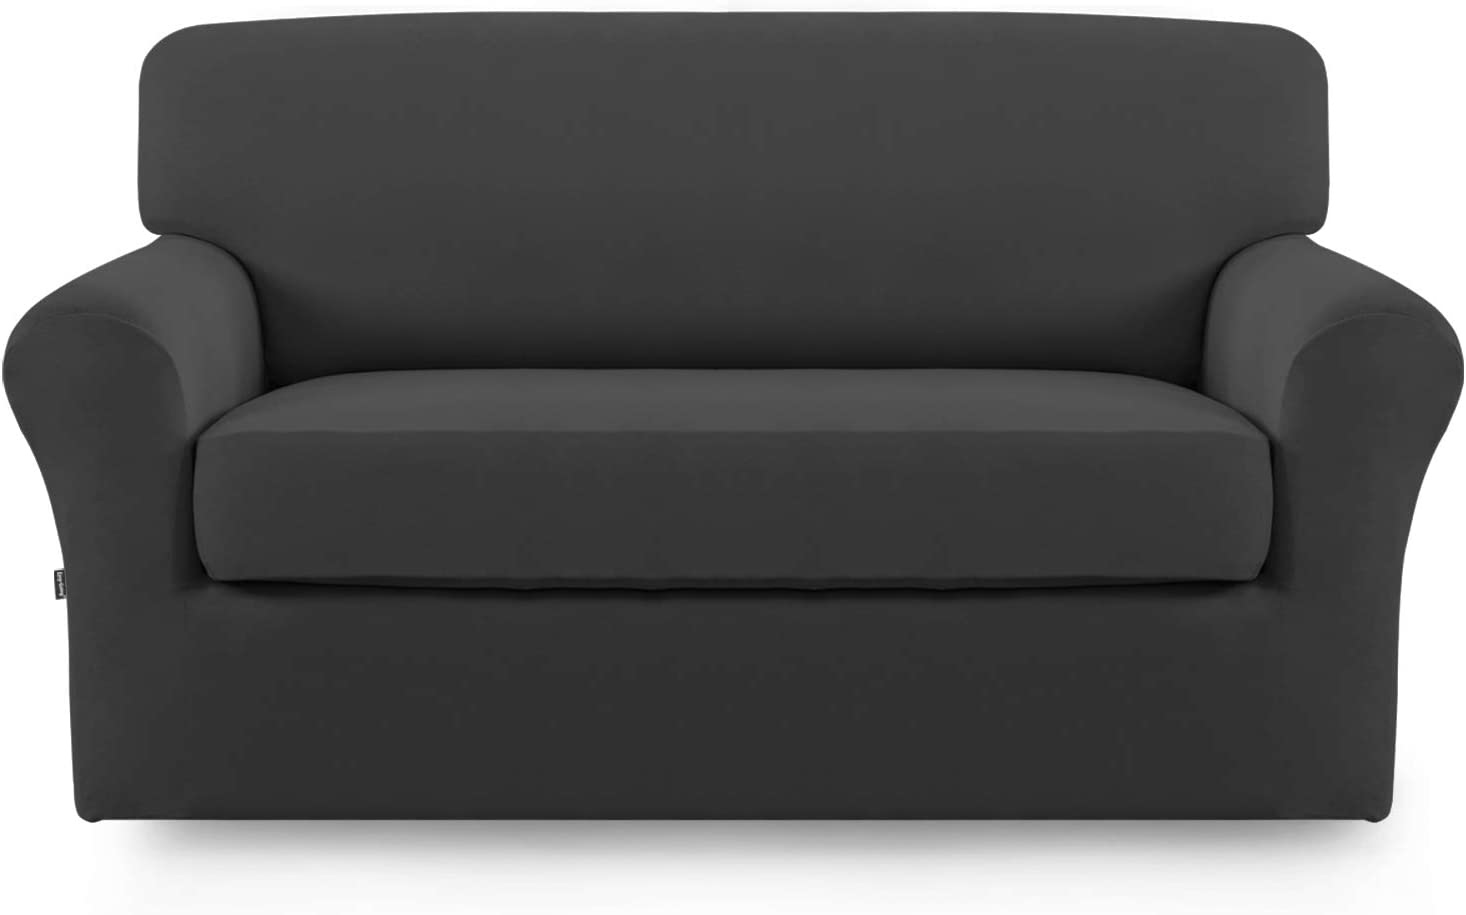 Stretch Sofa Slipcover,2-Piece Sofa Cover Furniture Protector Couch Micro Fiber Super Soft Sturdy with Elastic Bottom Pets,Kids,Children,Dog,Cat(Loveseat,Dark Gray)